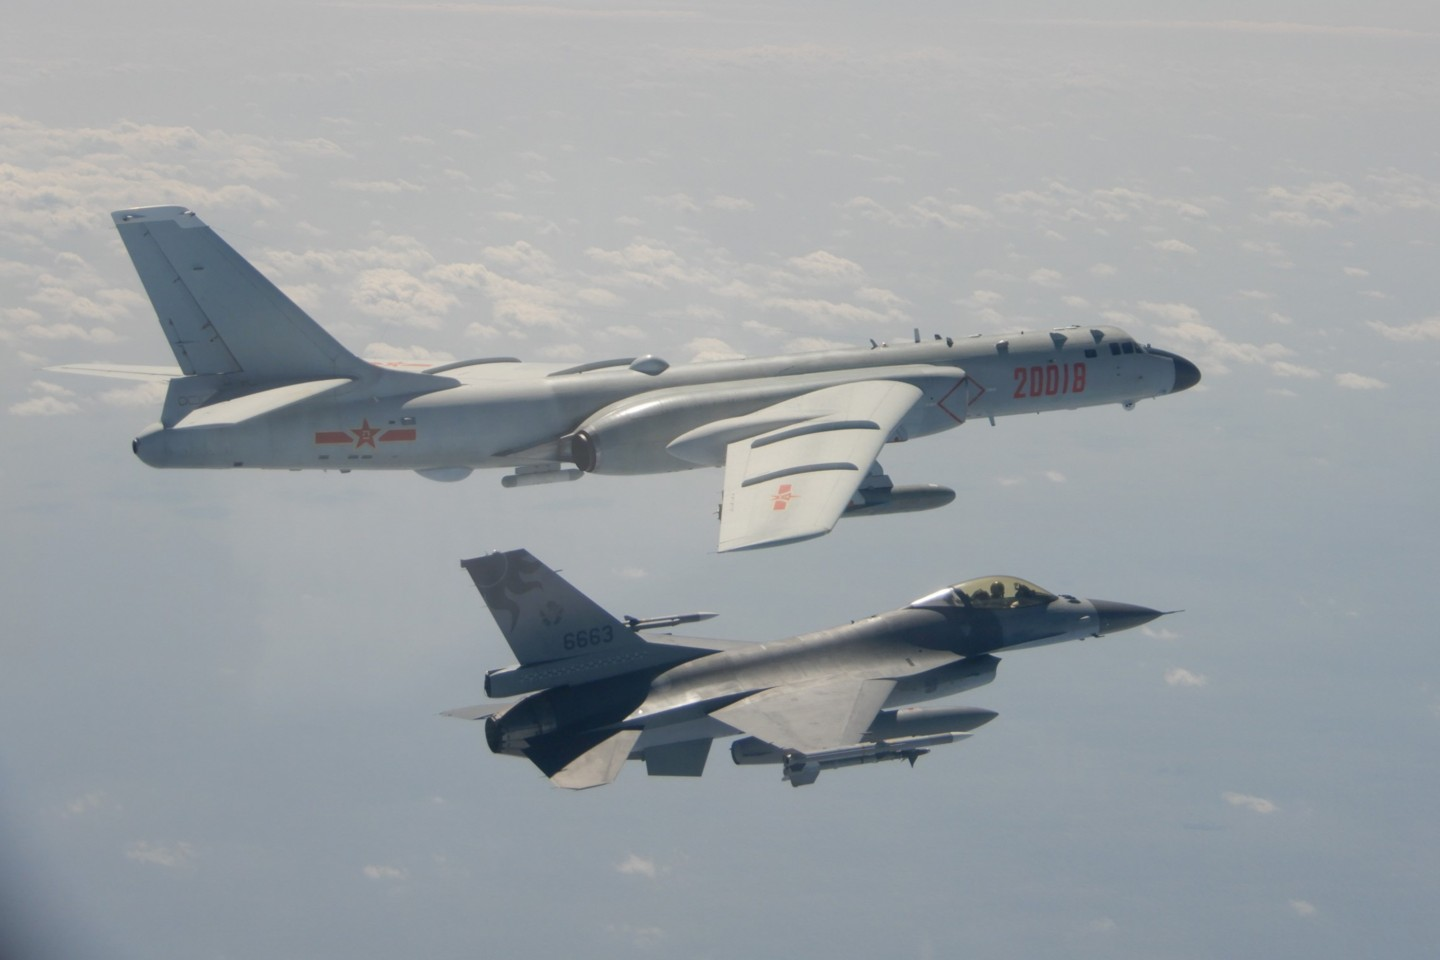 This handout photo taken and released on 10 February 2020 by Taiwan's Defense Ministry shows a Taiwanese F-16 fighter jet flying next to a Chinese H-6 bomber (top) in Taiwan's airspace. (Handout/Taiwan's Defense Ministry/AFP)